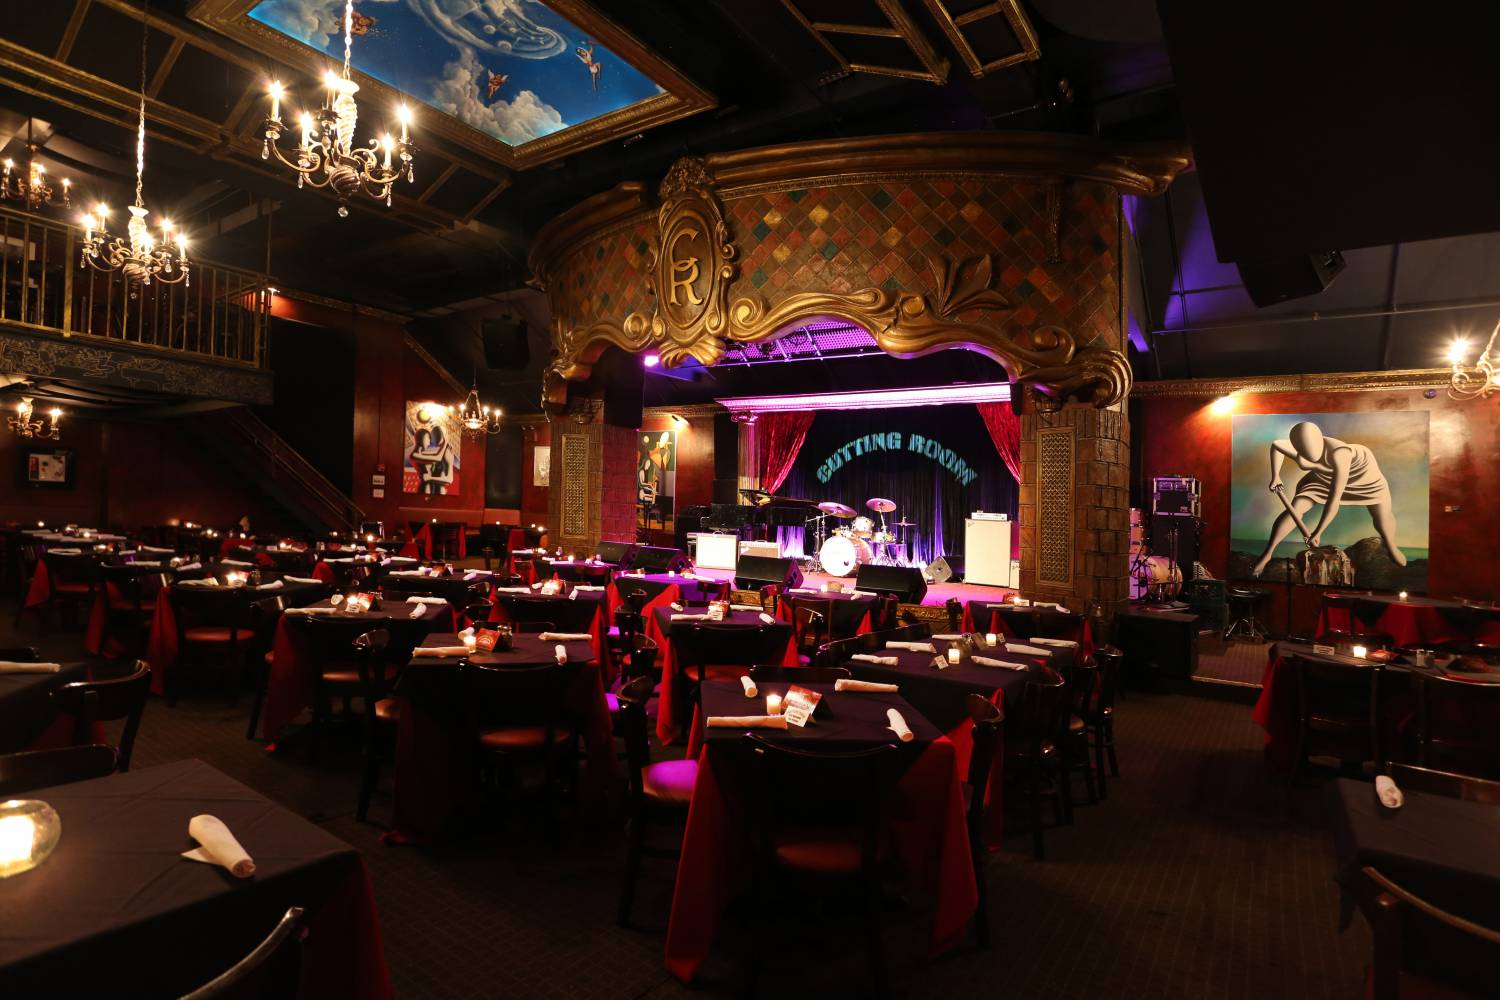 The Cutting Room, wide